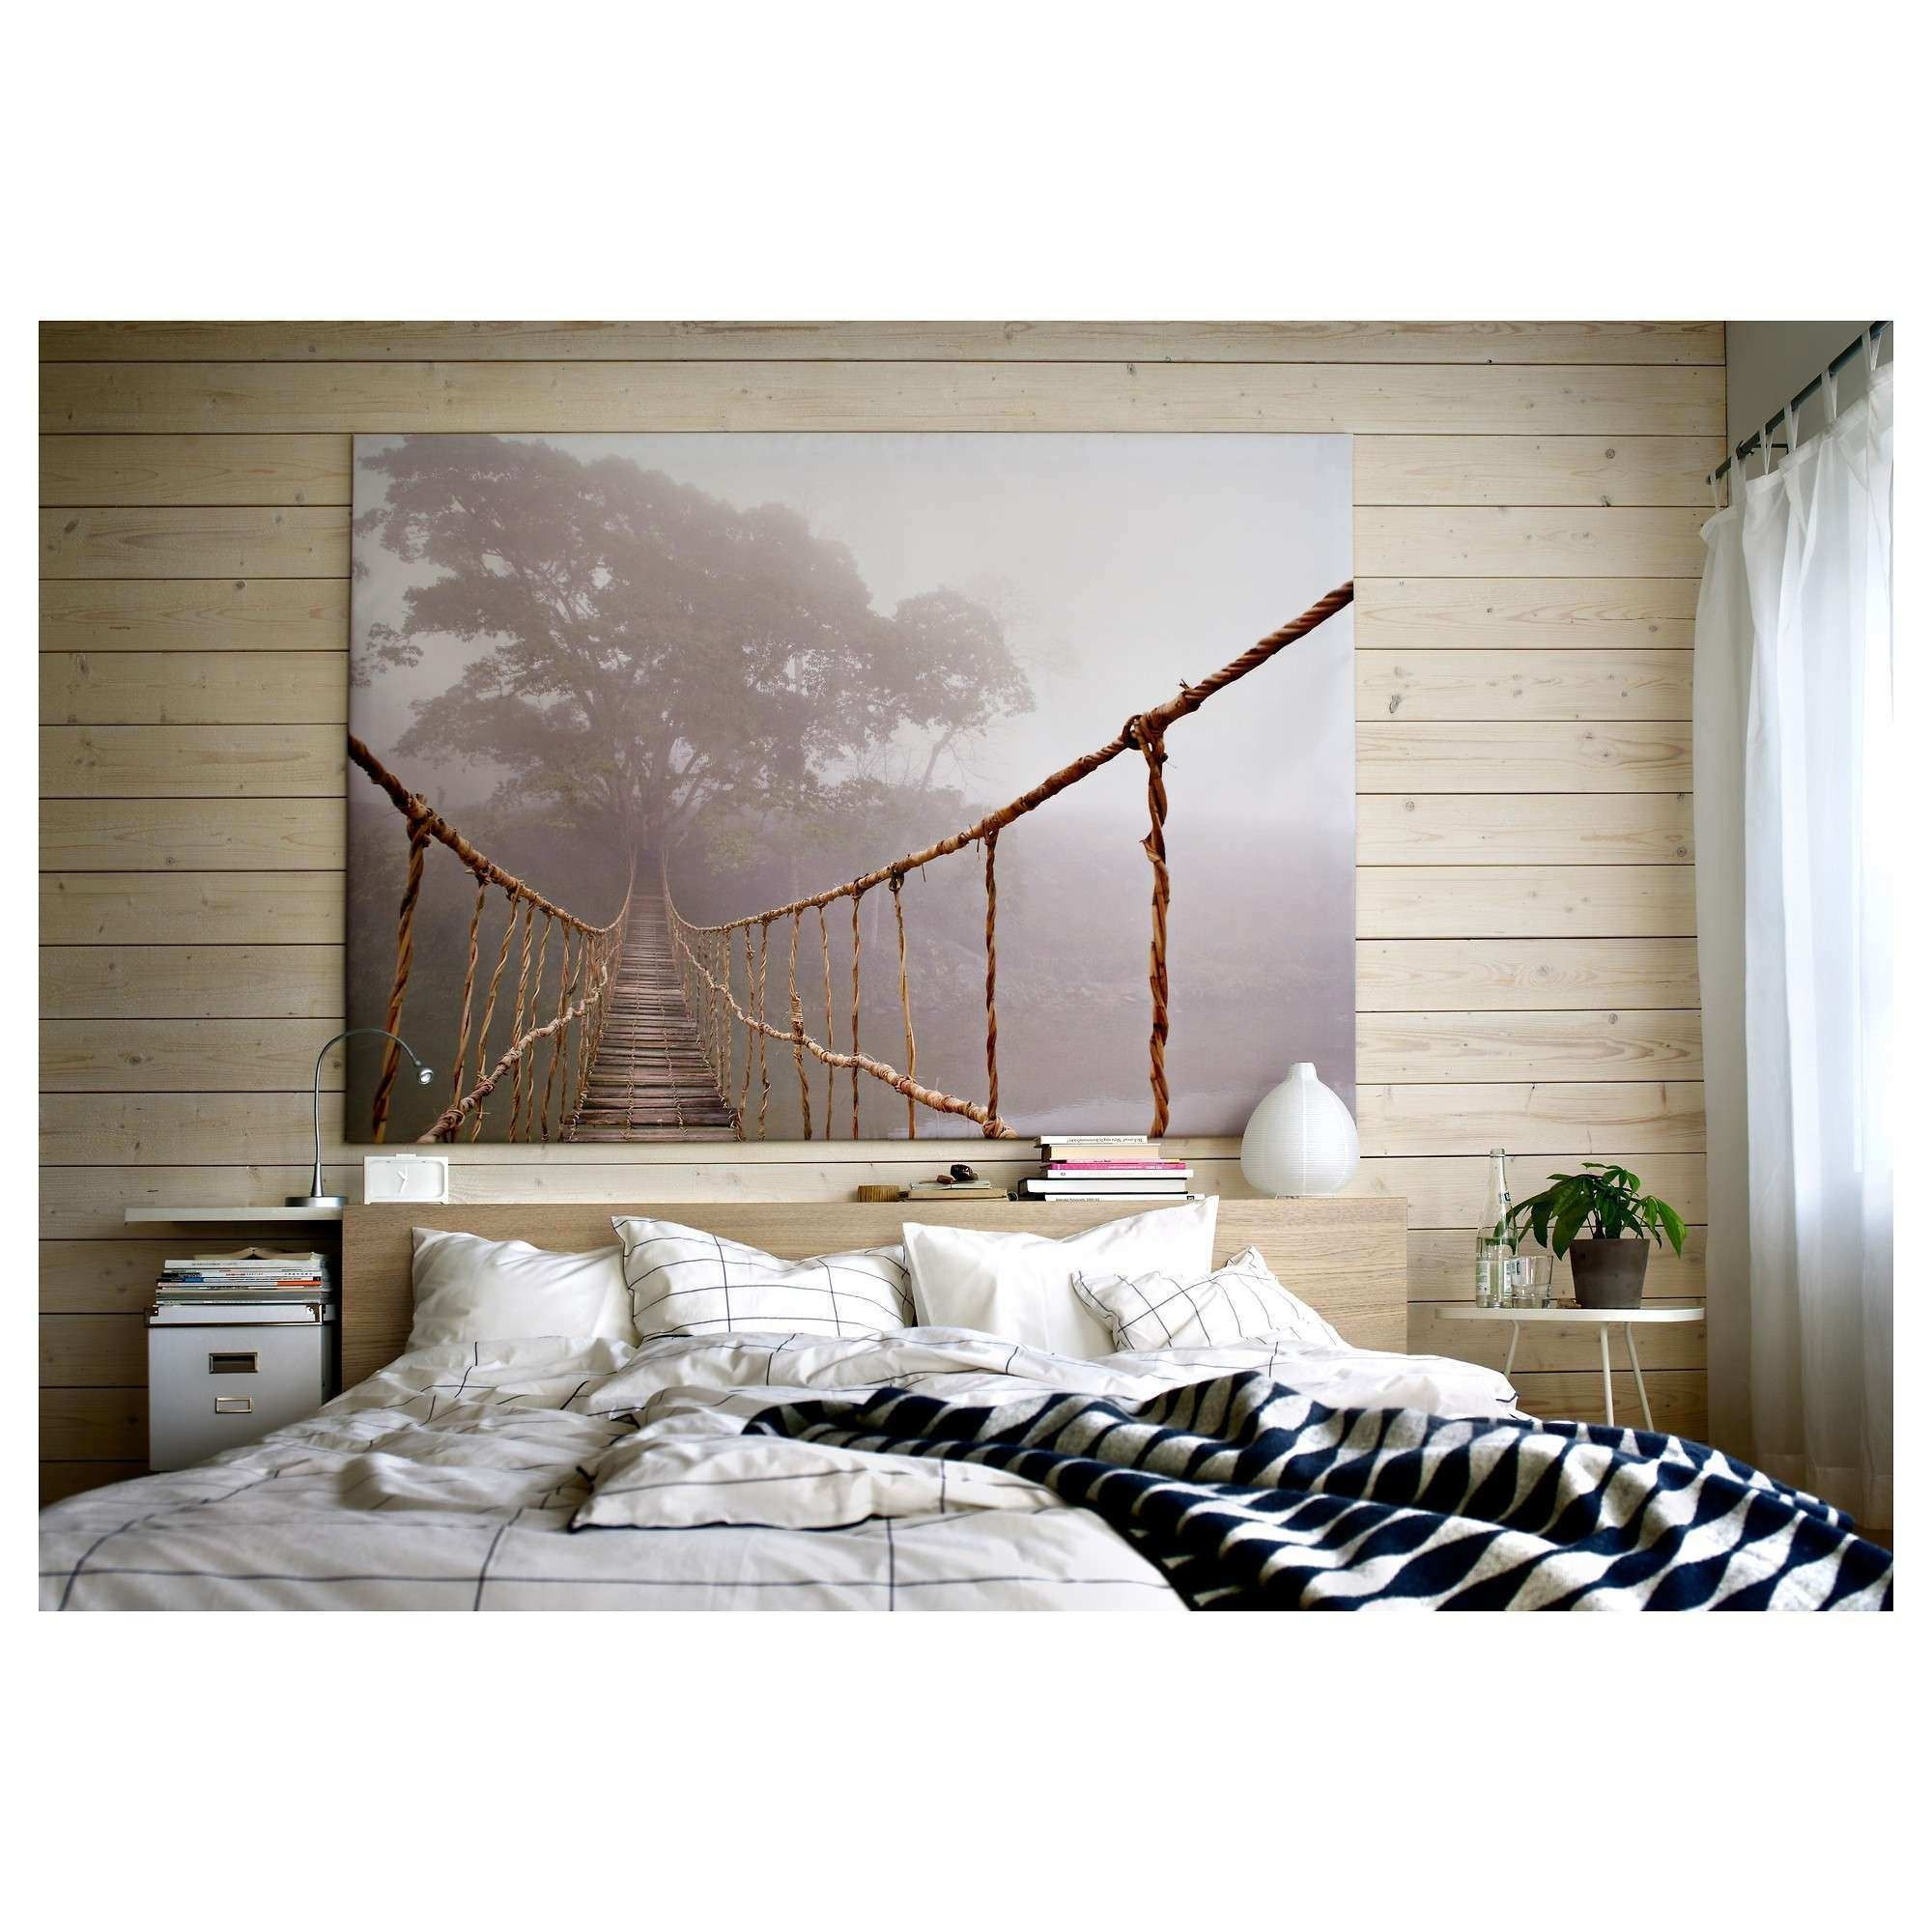 Giant Wall Art New Ikea Wall Art Takuice | Wall Art Ideas With Most Recent Giant Wall Art (View 7 of 20)